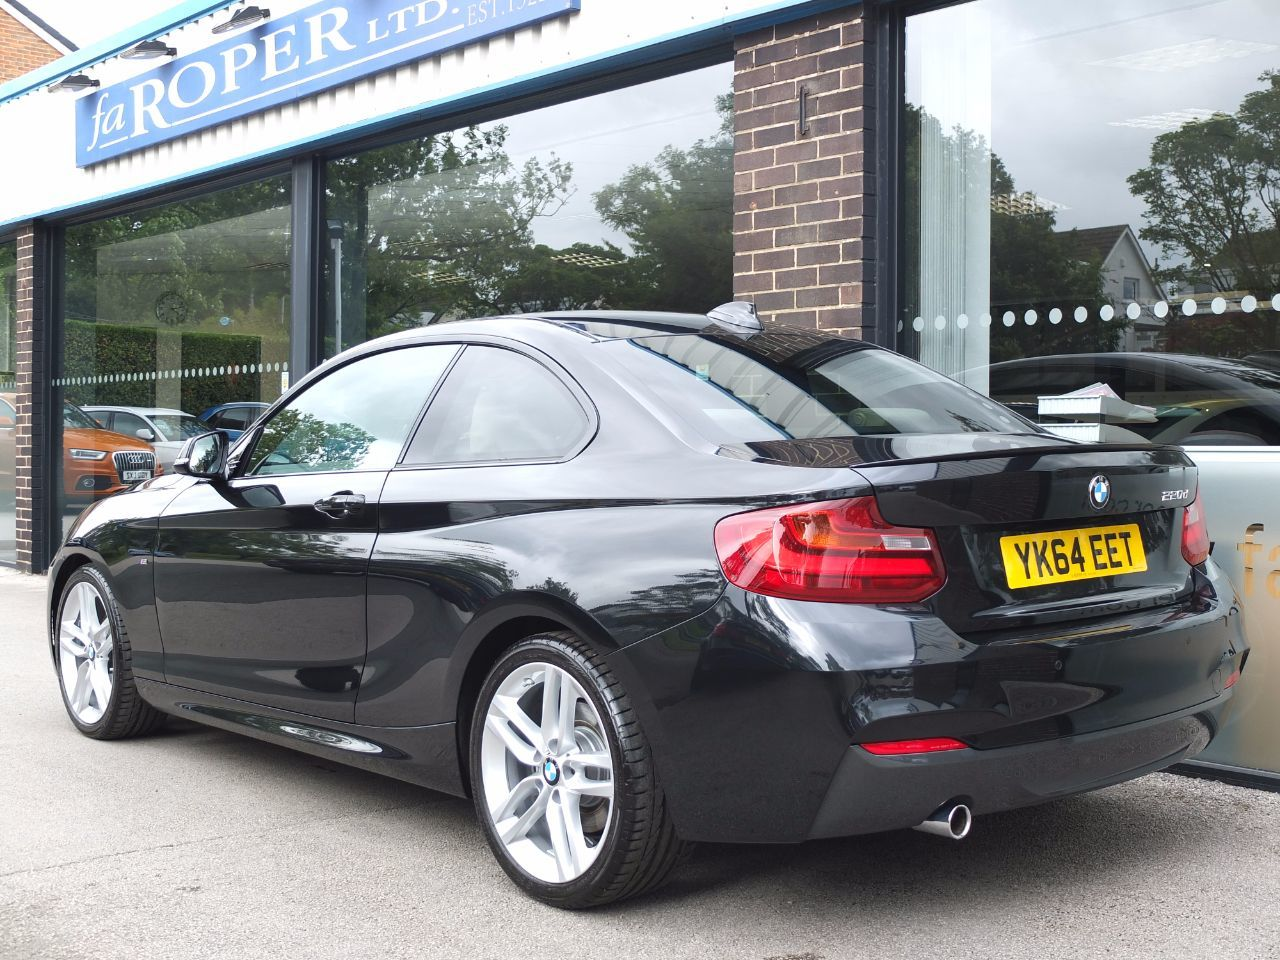 second hand bmw 2 series 220d m sport coupe auto pro media leather for sale in bradford. Black Bedroom Furniture Sets. Home Design Ideas